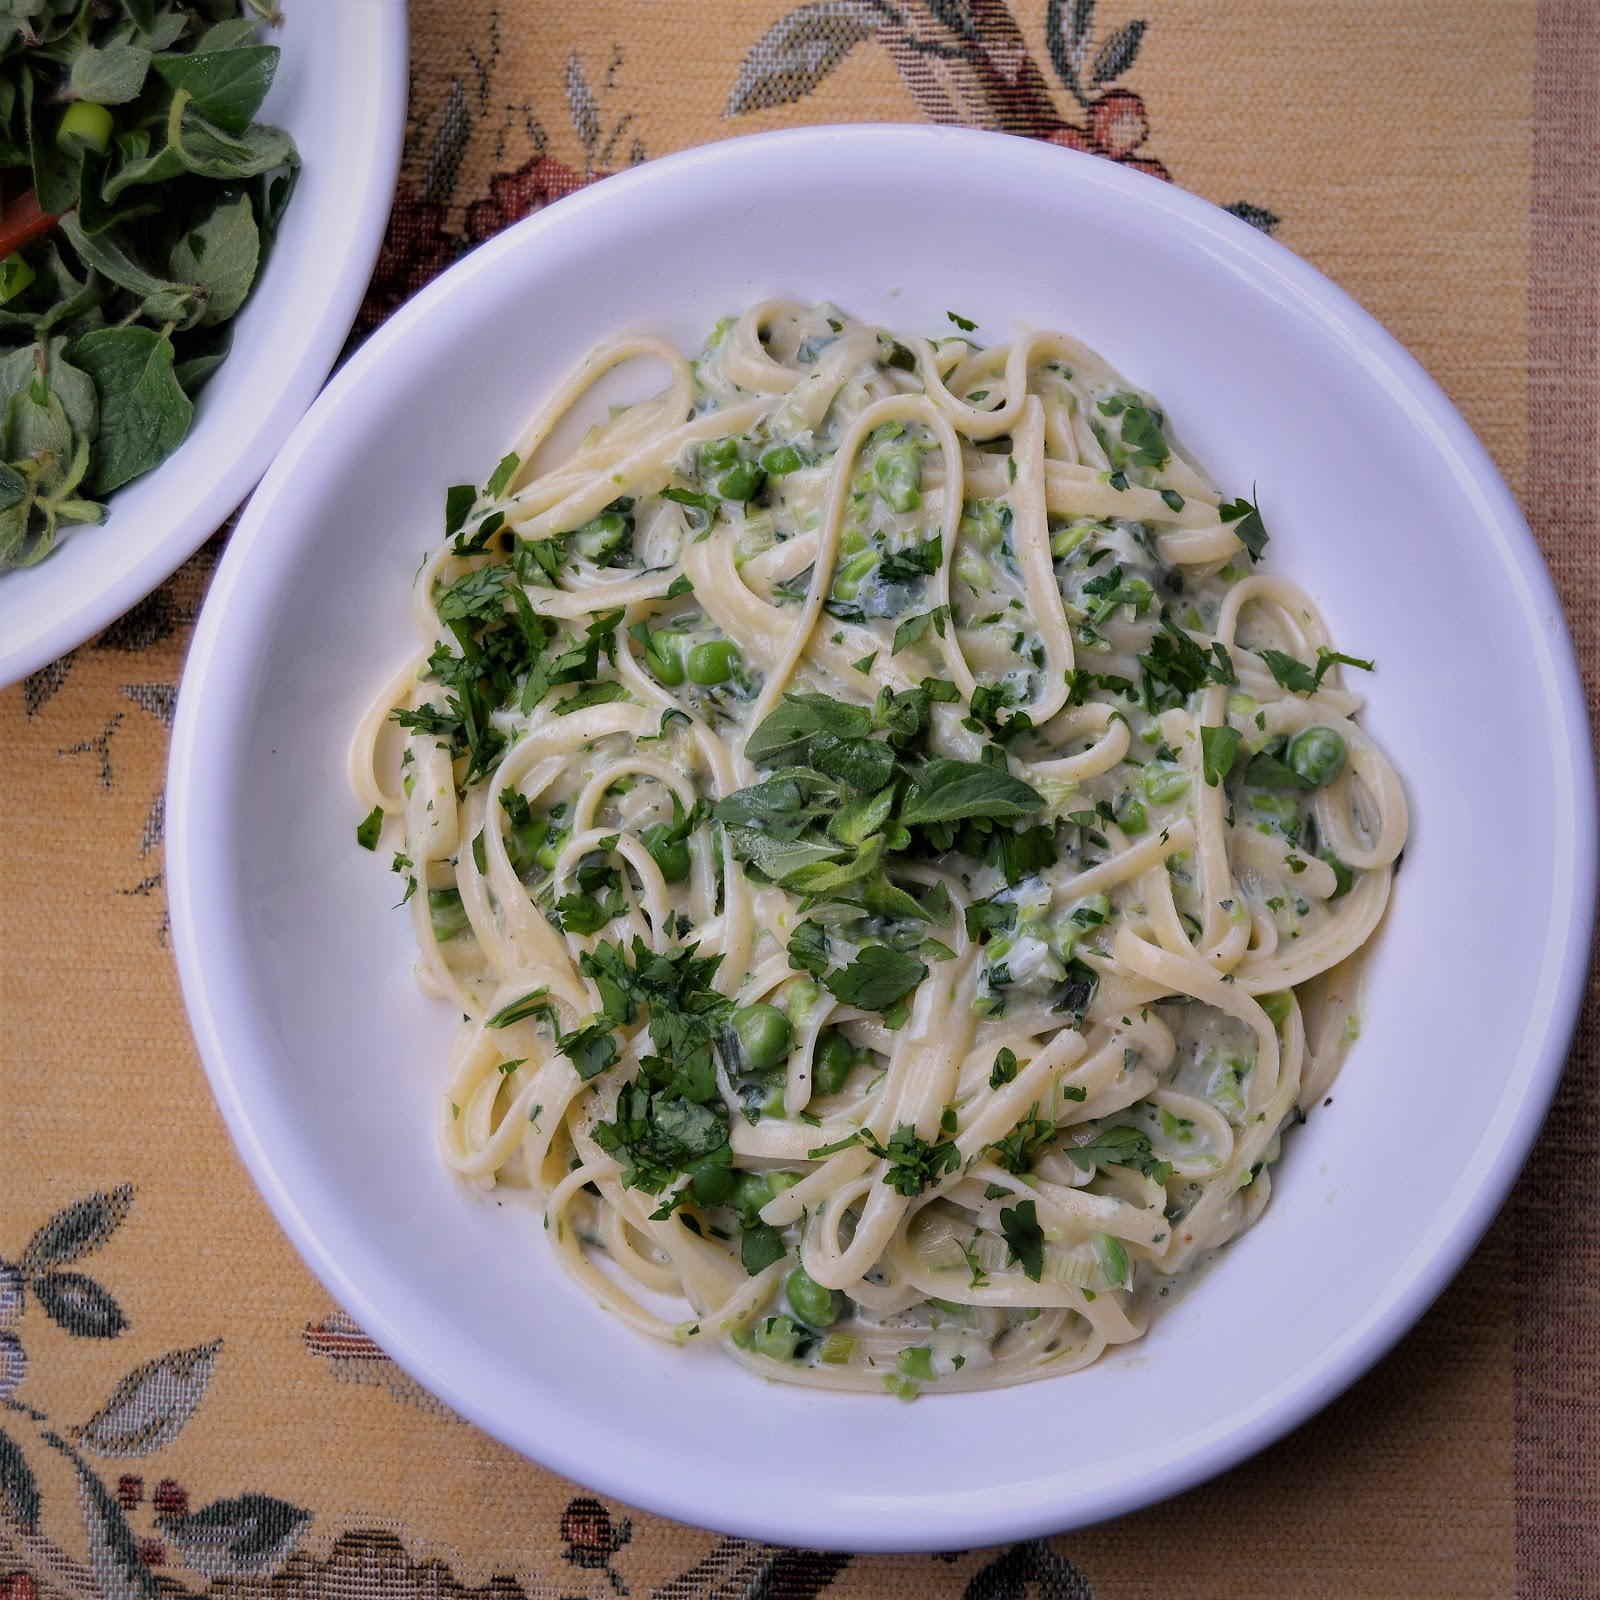 Pasta primavera a la jamie olivergluten free bake free en i was watching a jamie oliver show on tv the other day and saw him preparing this amazing pasta dish it looked delicious and i decided to try it with forumfinder Image collections